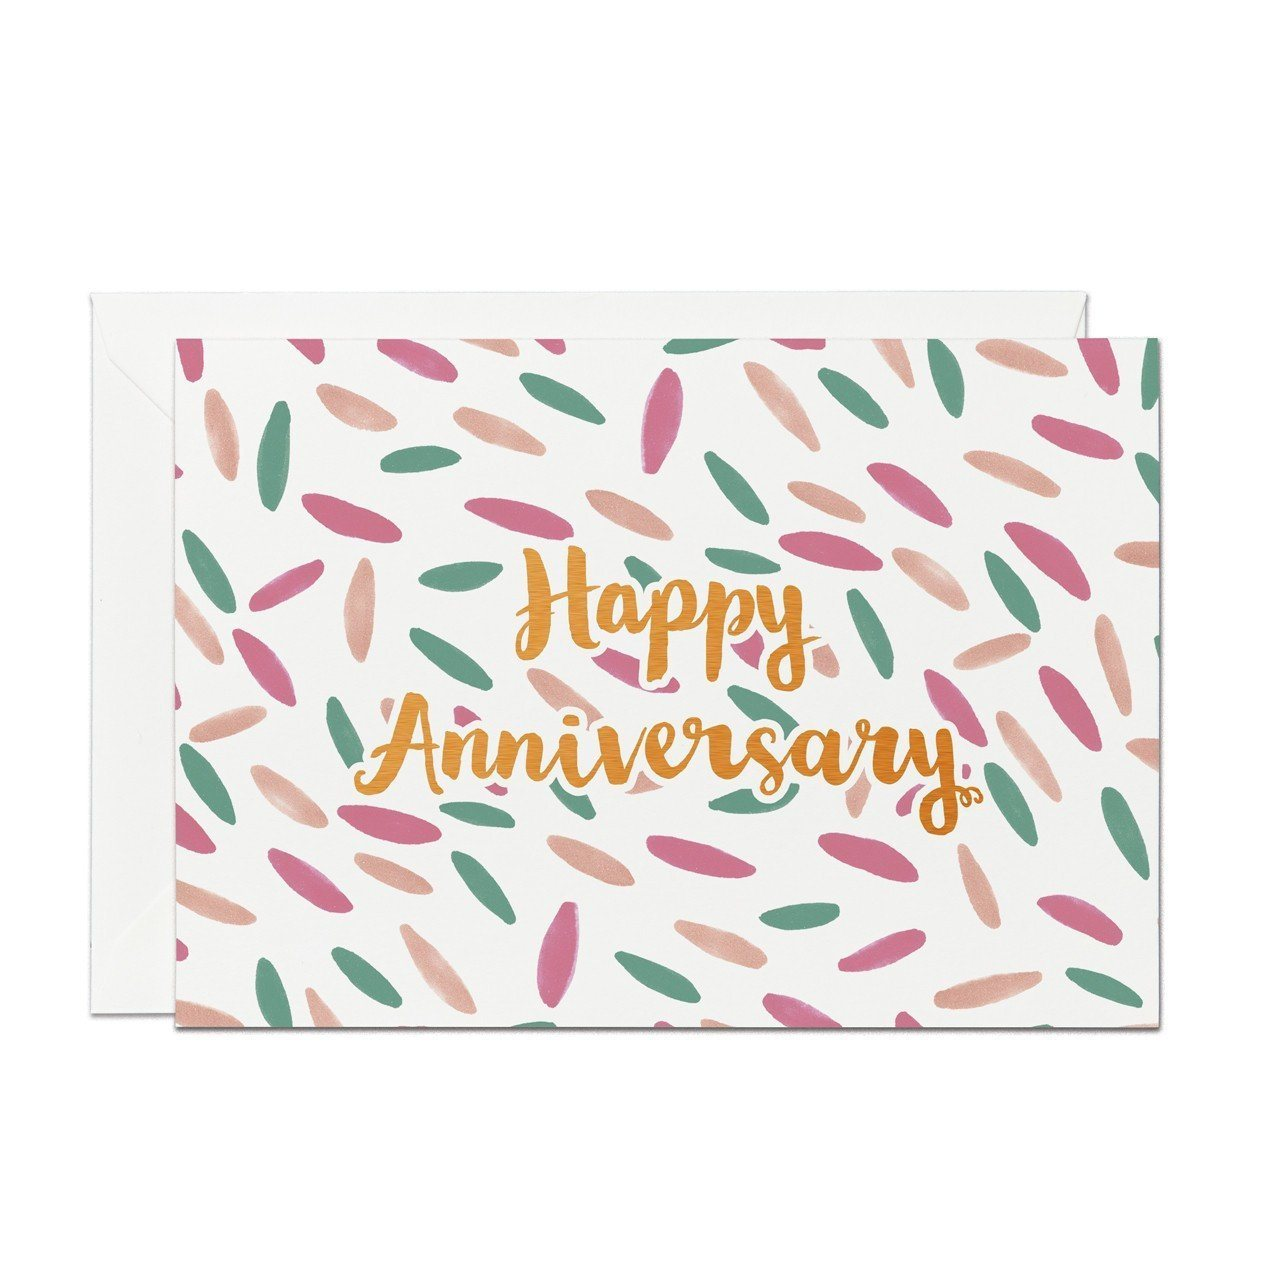 Happy Anniversary - Copper Foil Greeting Card - Chase and Wonder - Proudly Made in Britain